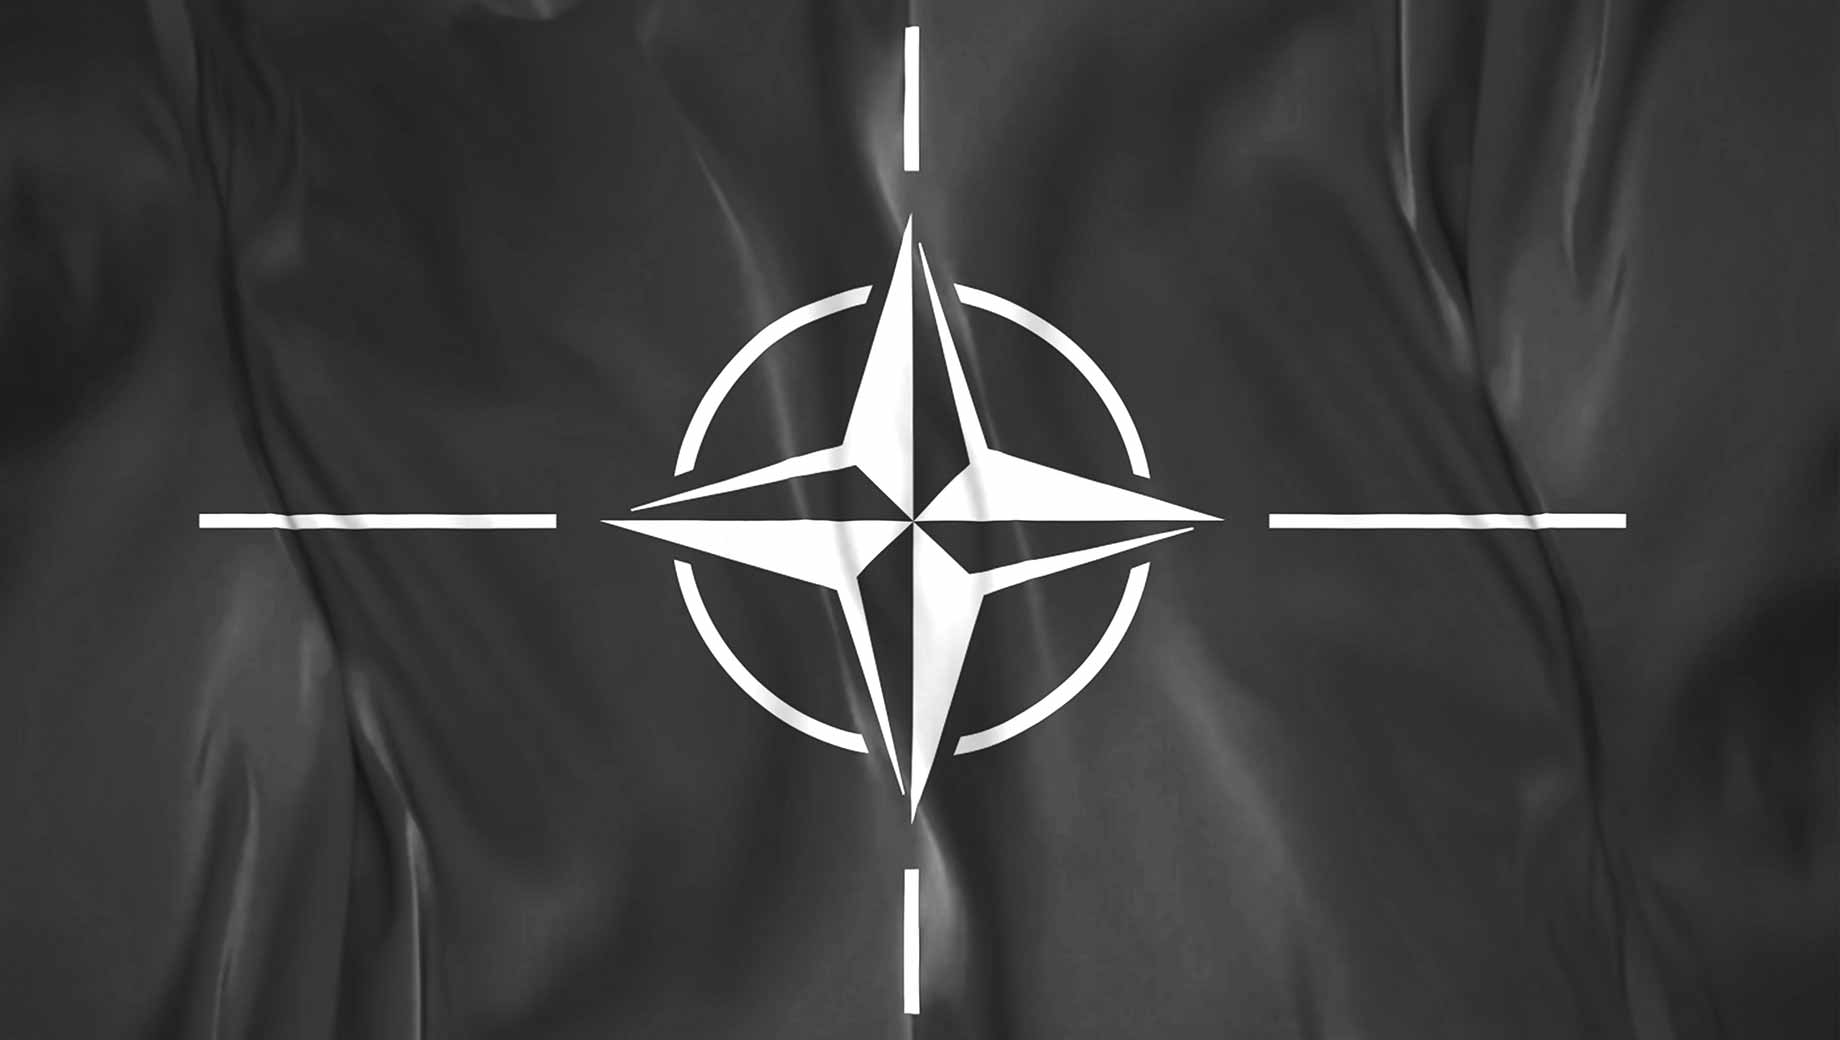 Americans Have Long Seen NATO as Good for U.S.